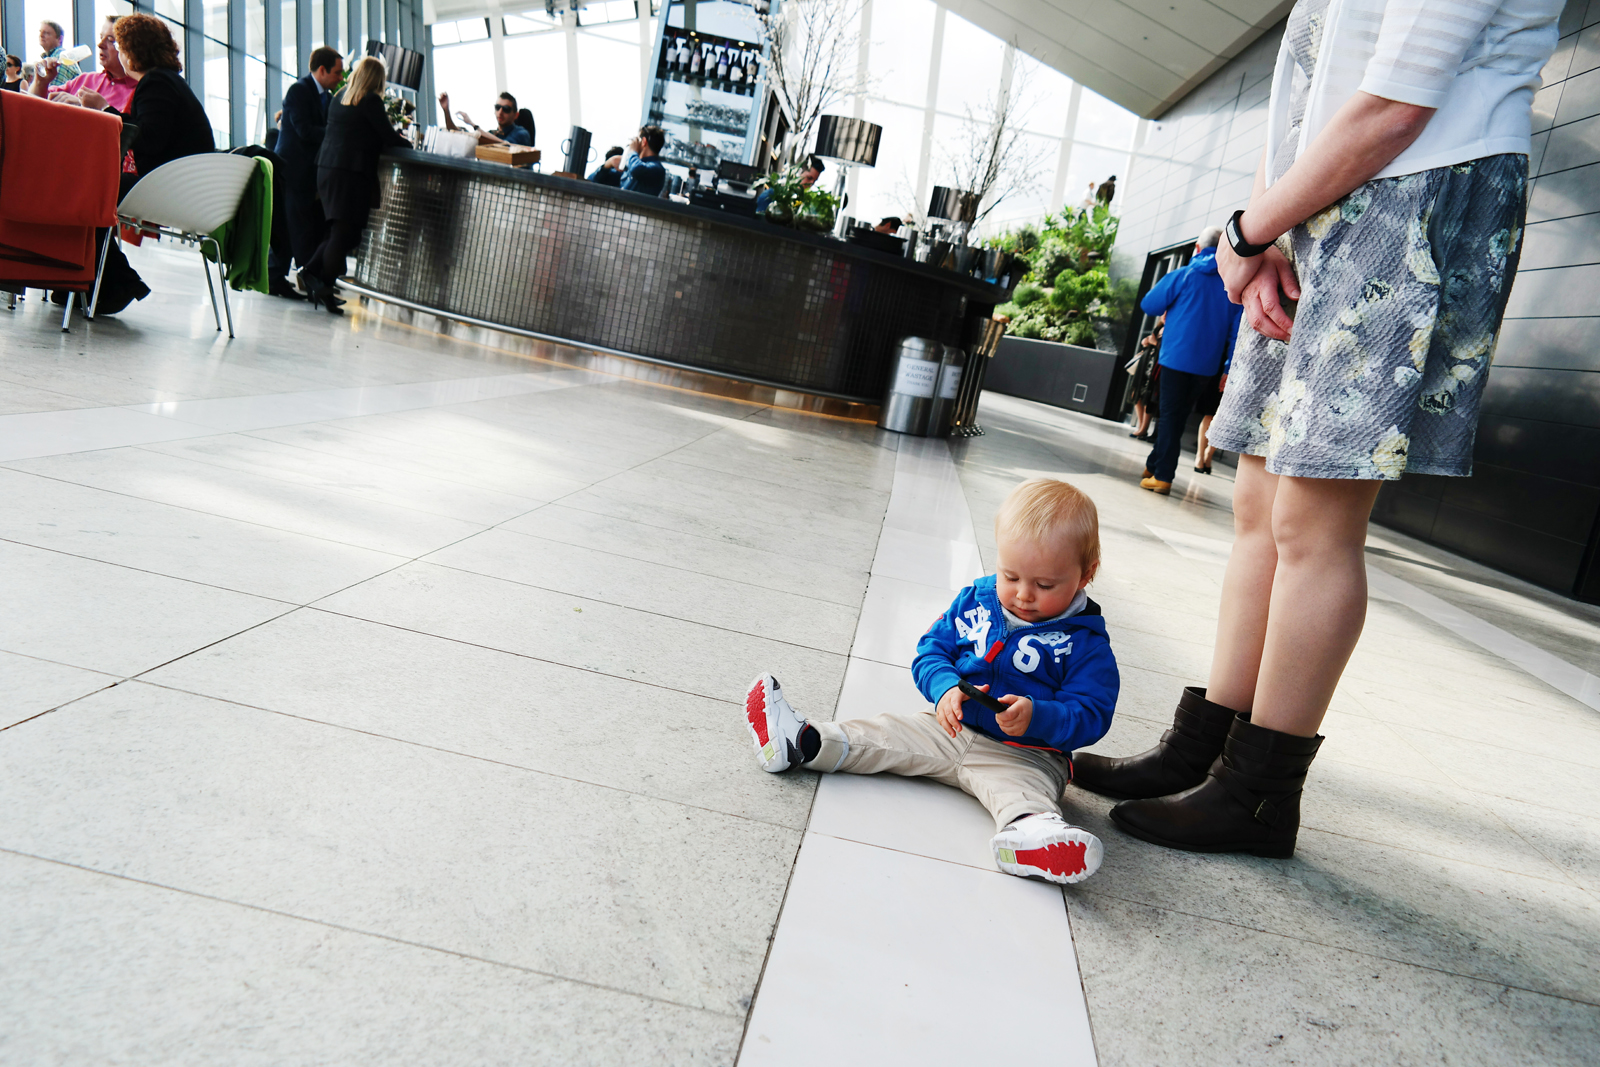 Baby-boy-sitting-on-the-floor-playing-with-cell-phone-The-Sky-Garden-Walkie-Talkie-Building-London-Londres-smartphone-samsung-photo-by-united-states-of-paris-blog